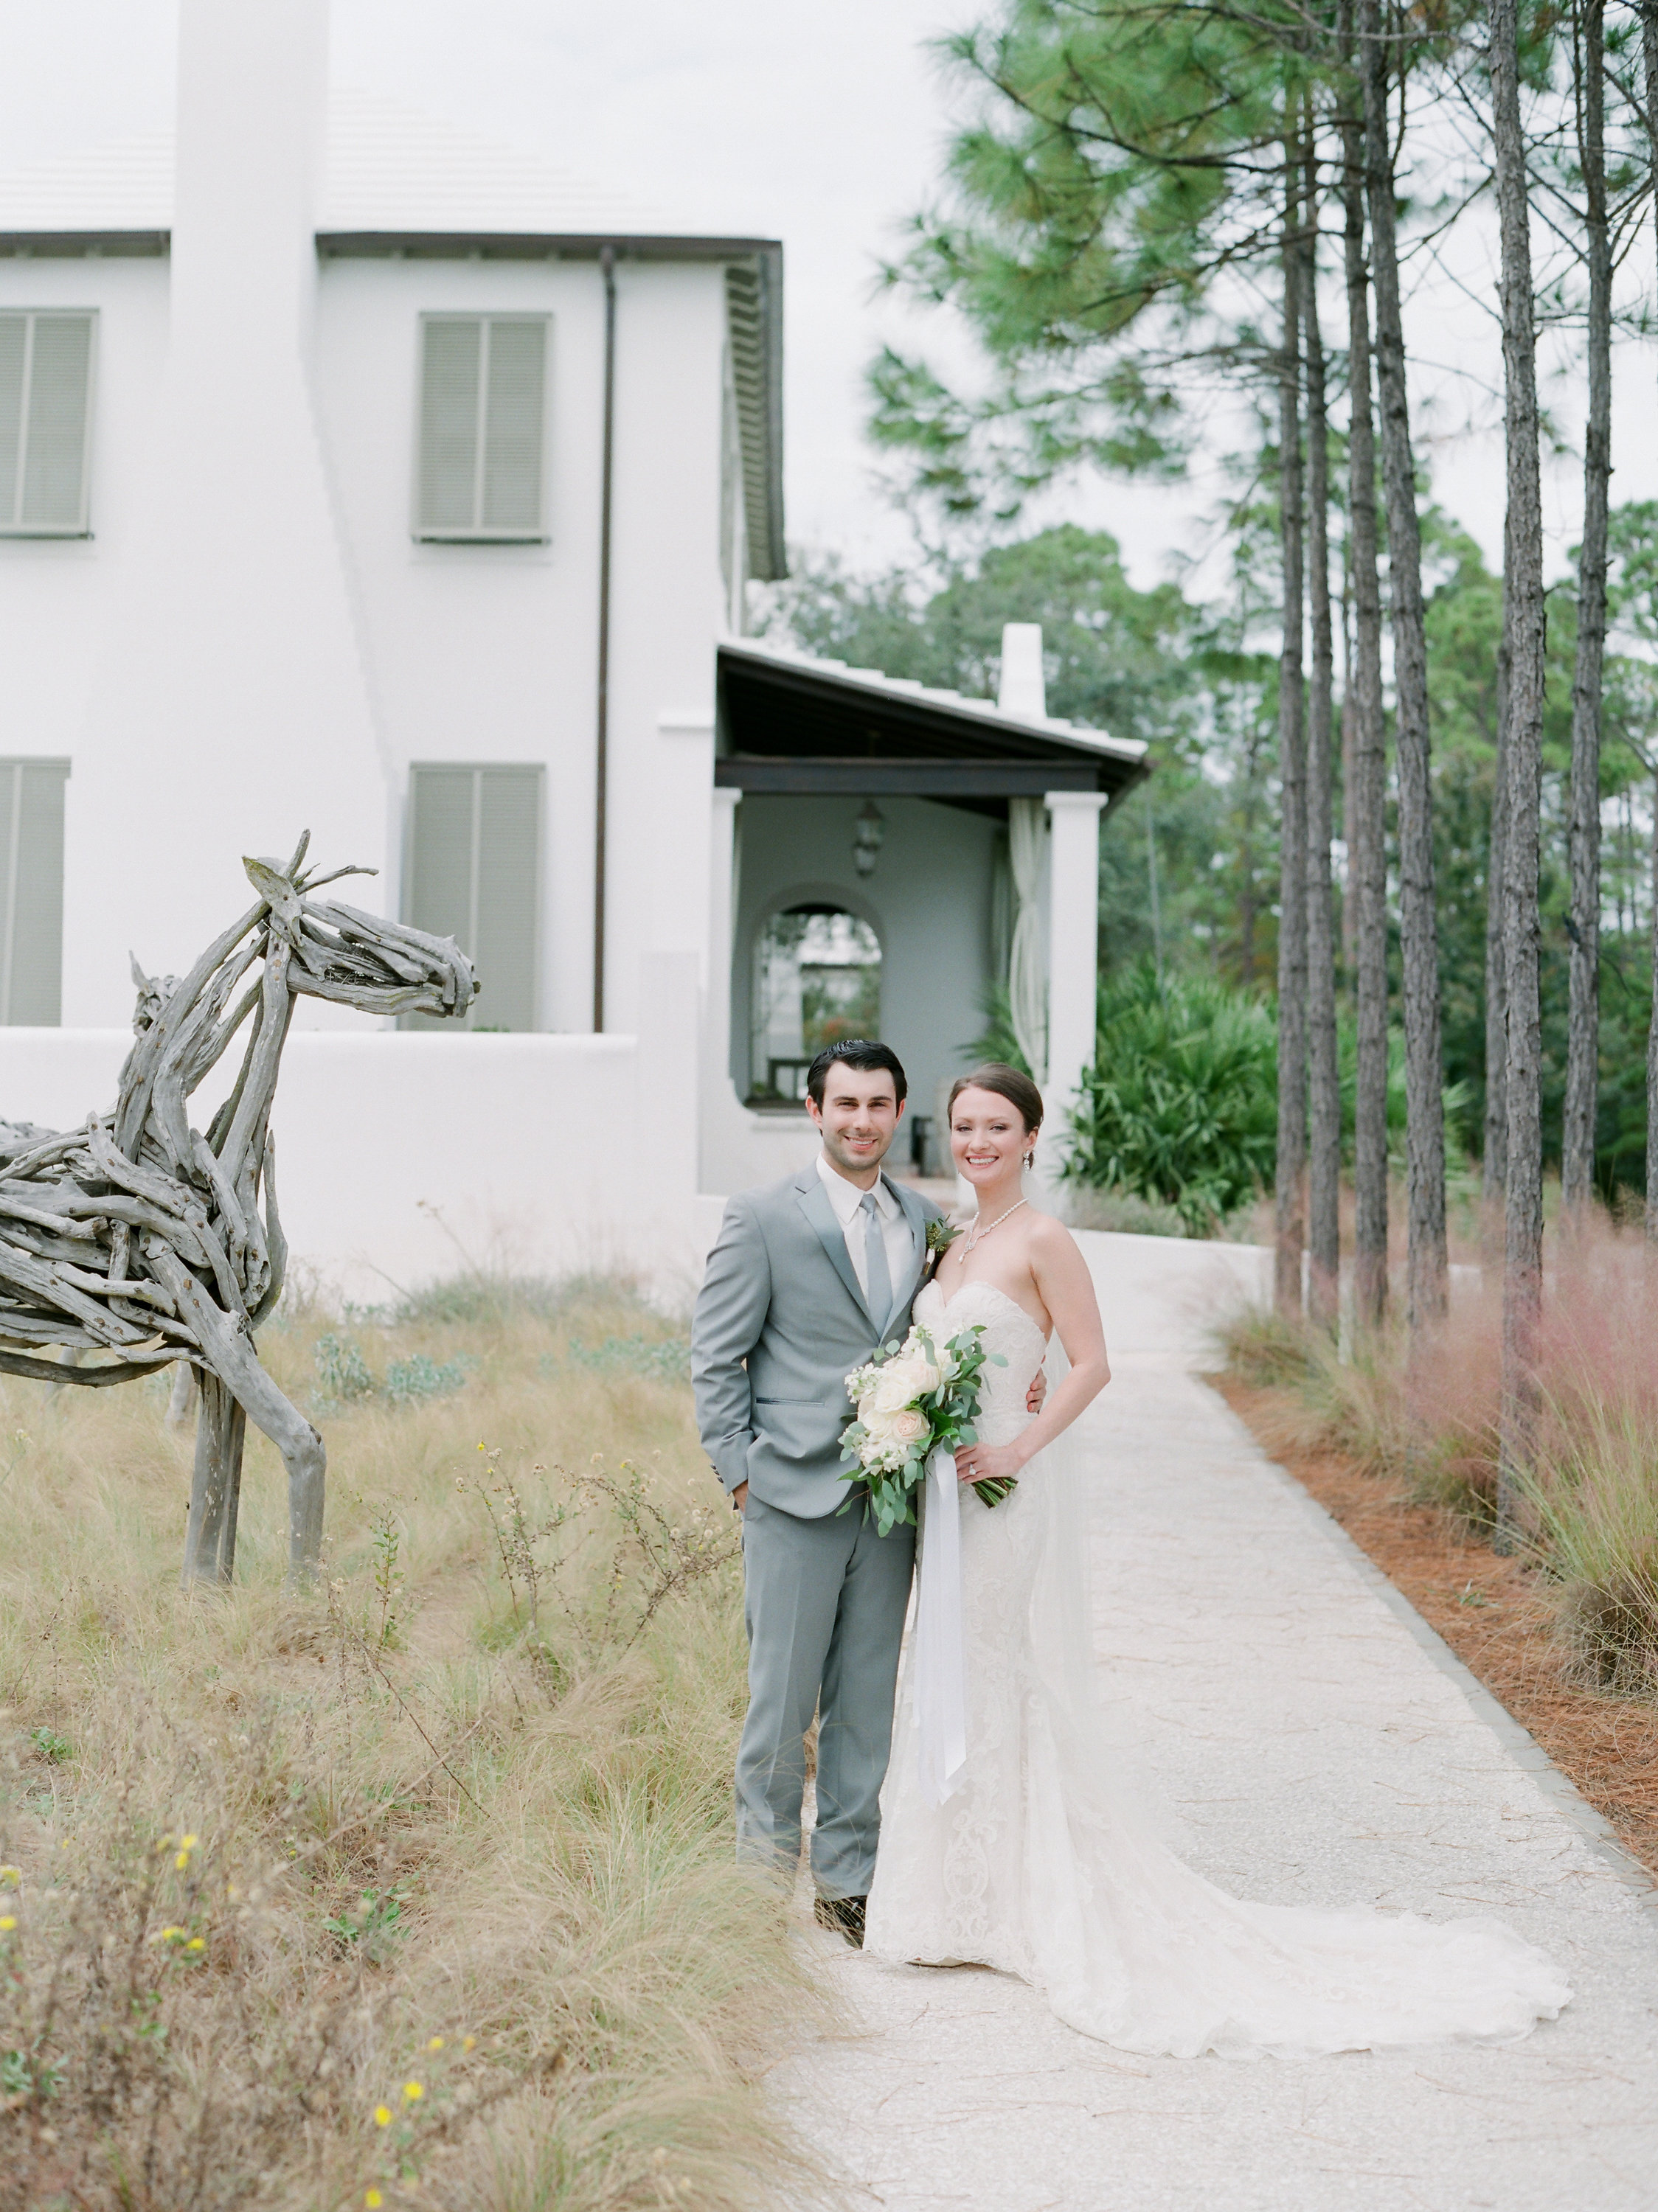 Alys Beach, Florida Wedding - Michael + Lauren   A celebration in the white washed Alys Beach was the perfect place for M + L's intimate wedding. Neutral tones, meaningful details and a reception at Caliza to end this perfect day.